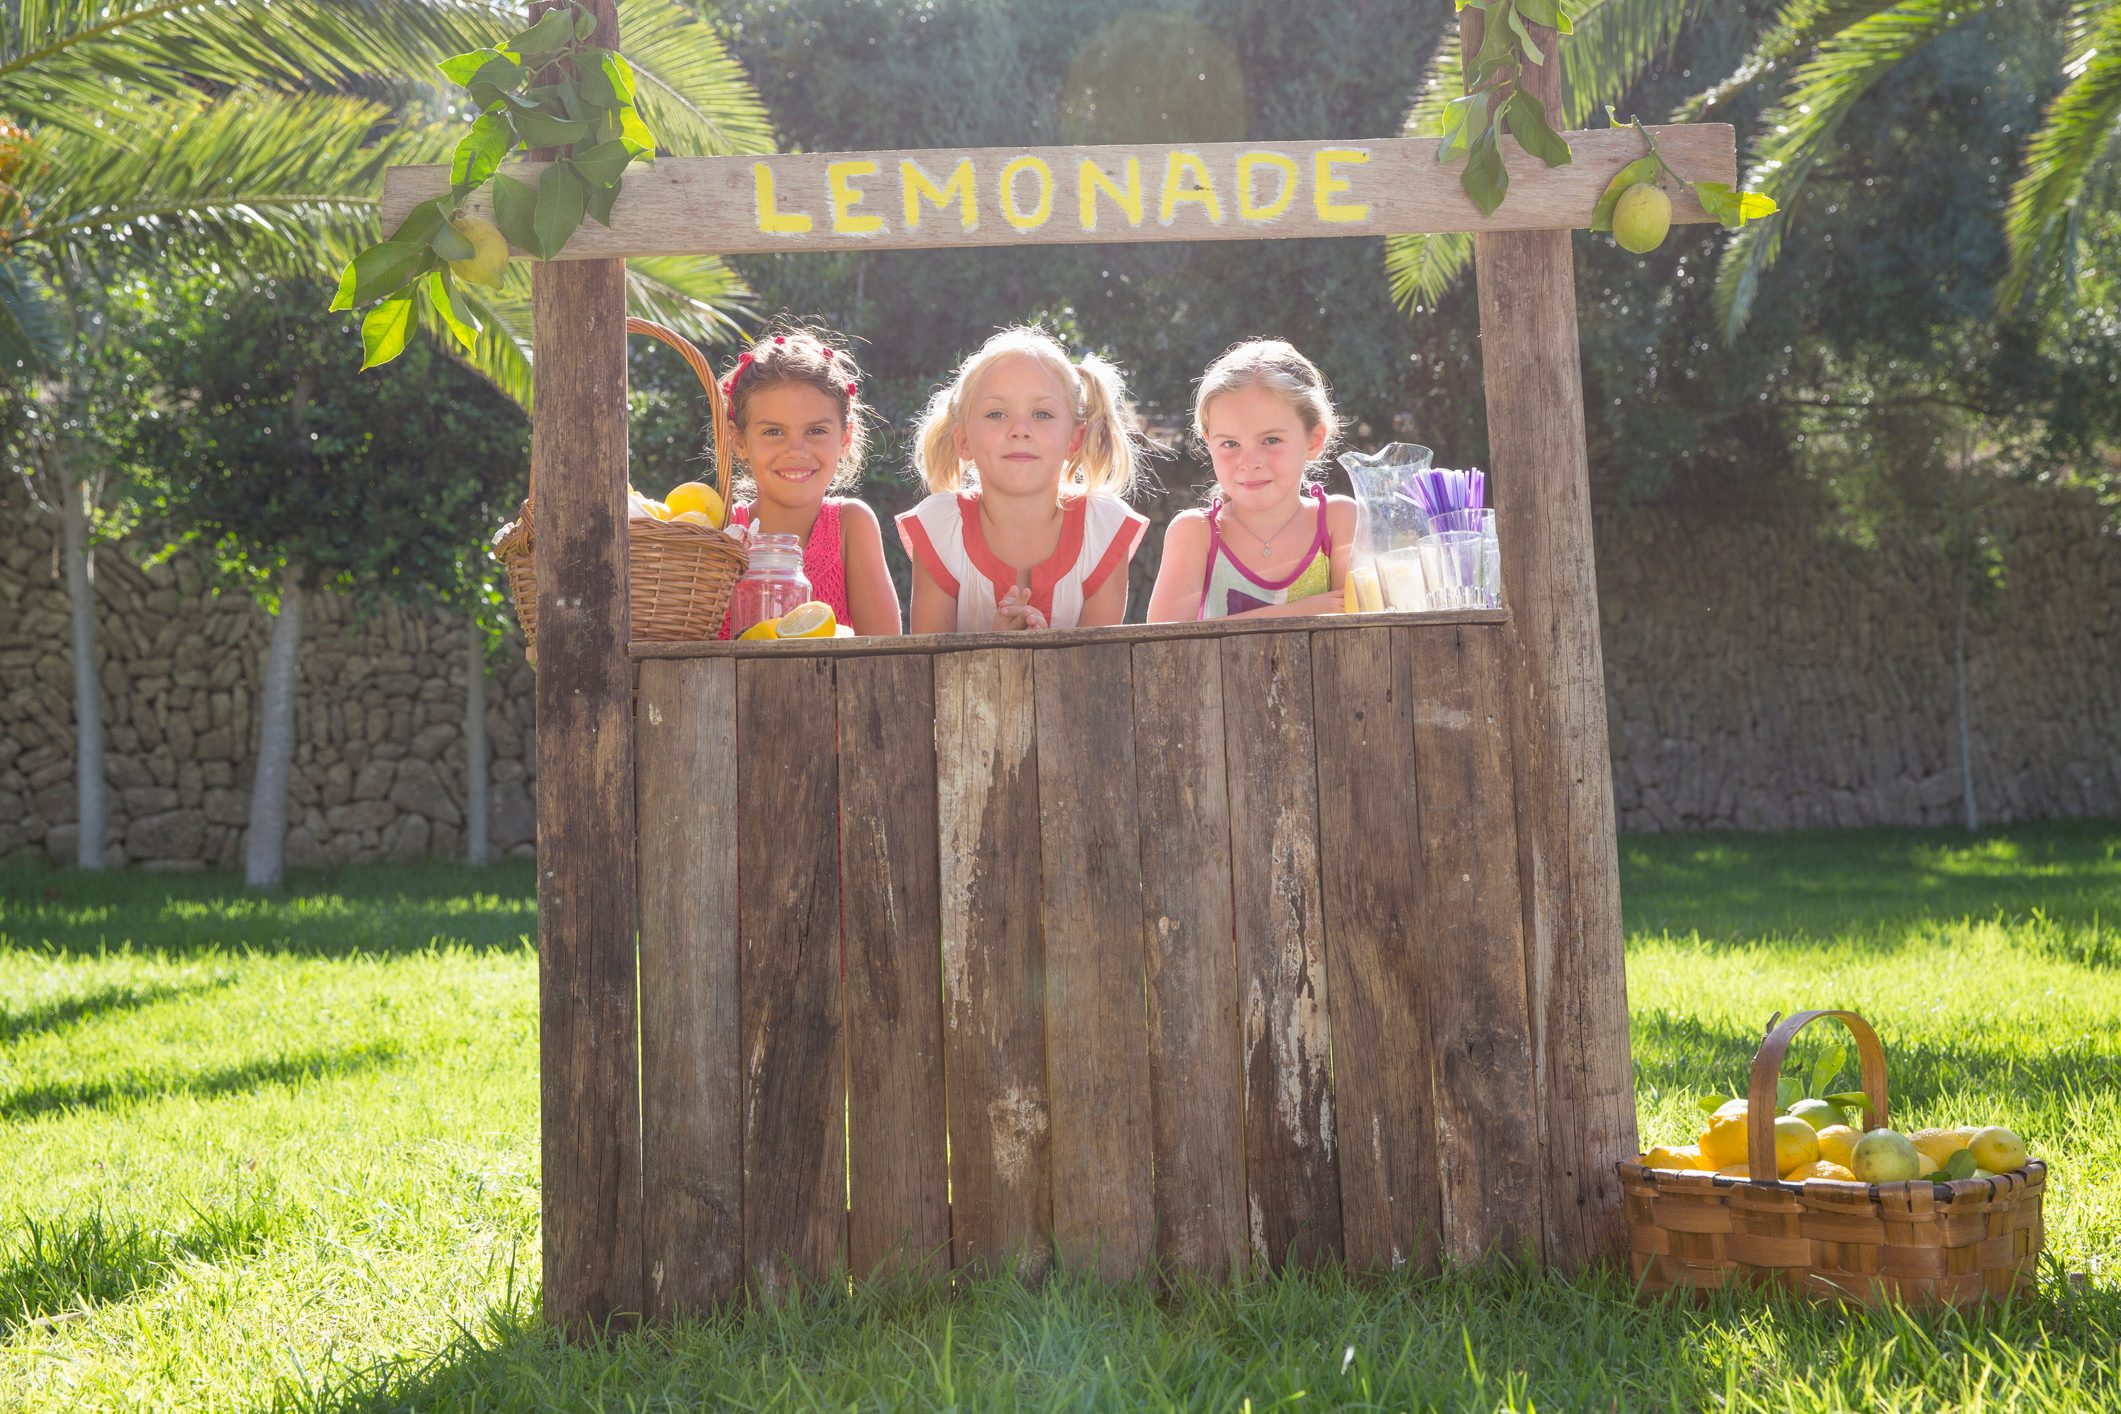 Portrait of three girls selling lemonade at stand in park